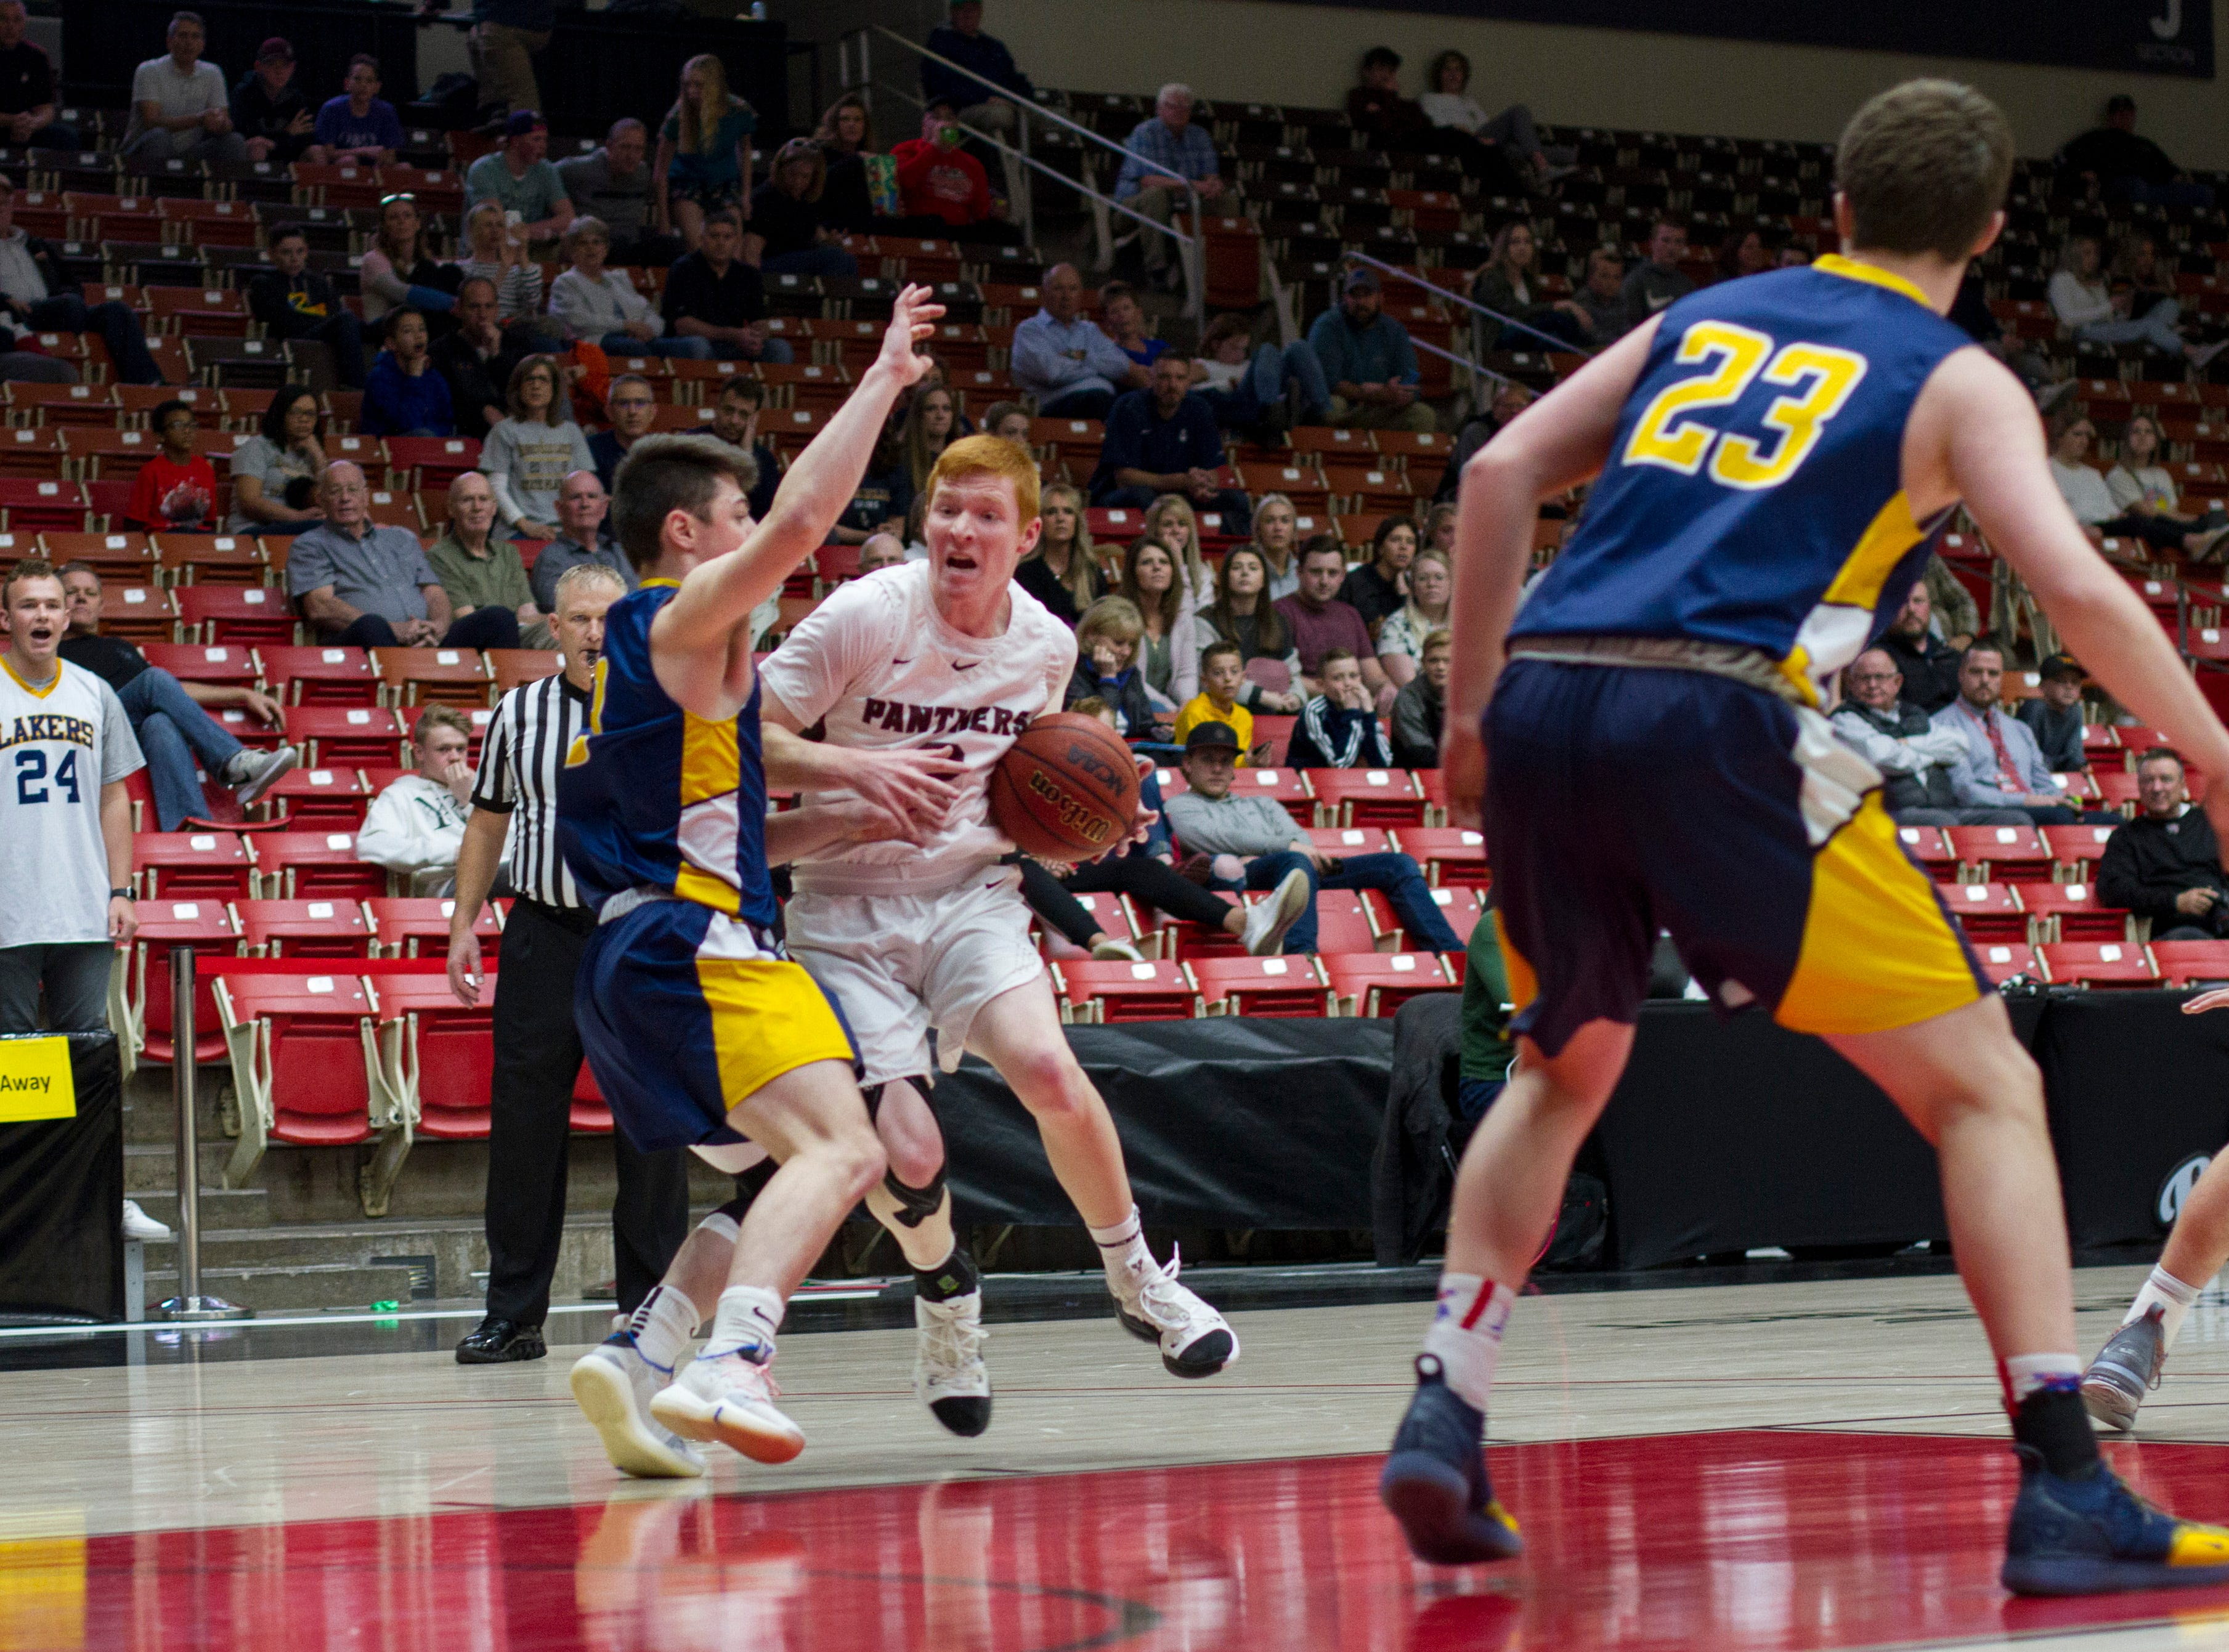 The Bonneville Lakers defeat the Pine View Panthers 60-46 during the state quarterfinals Thursday, Feb. 28, 2019.